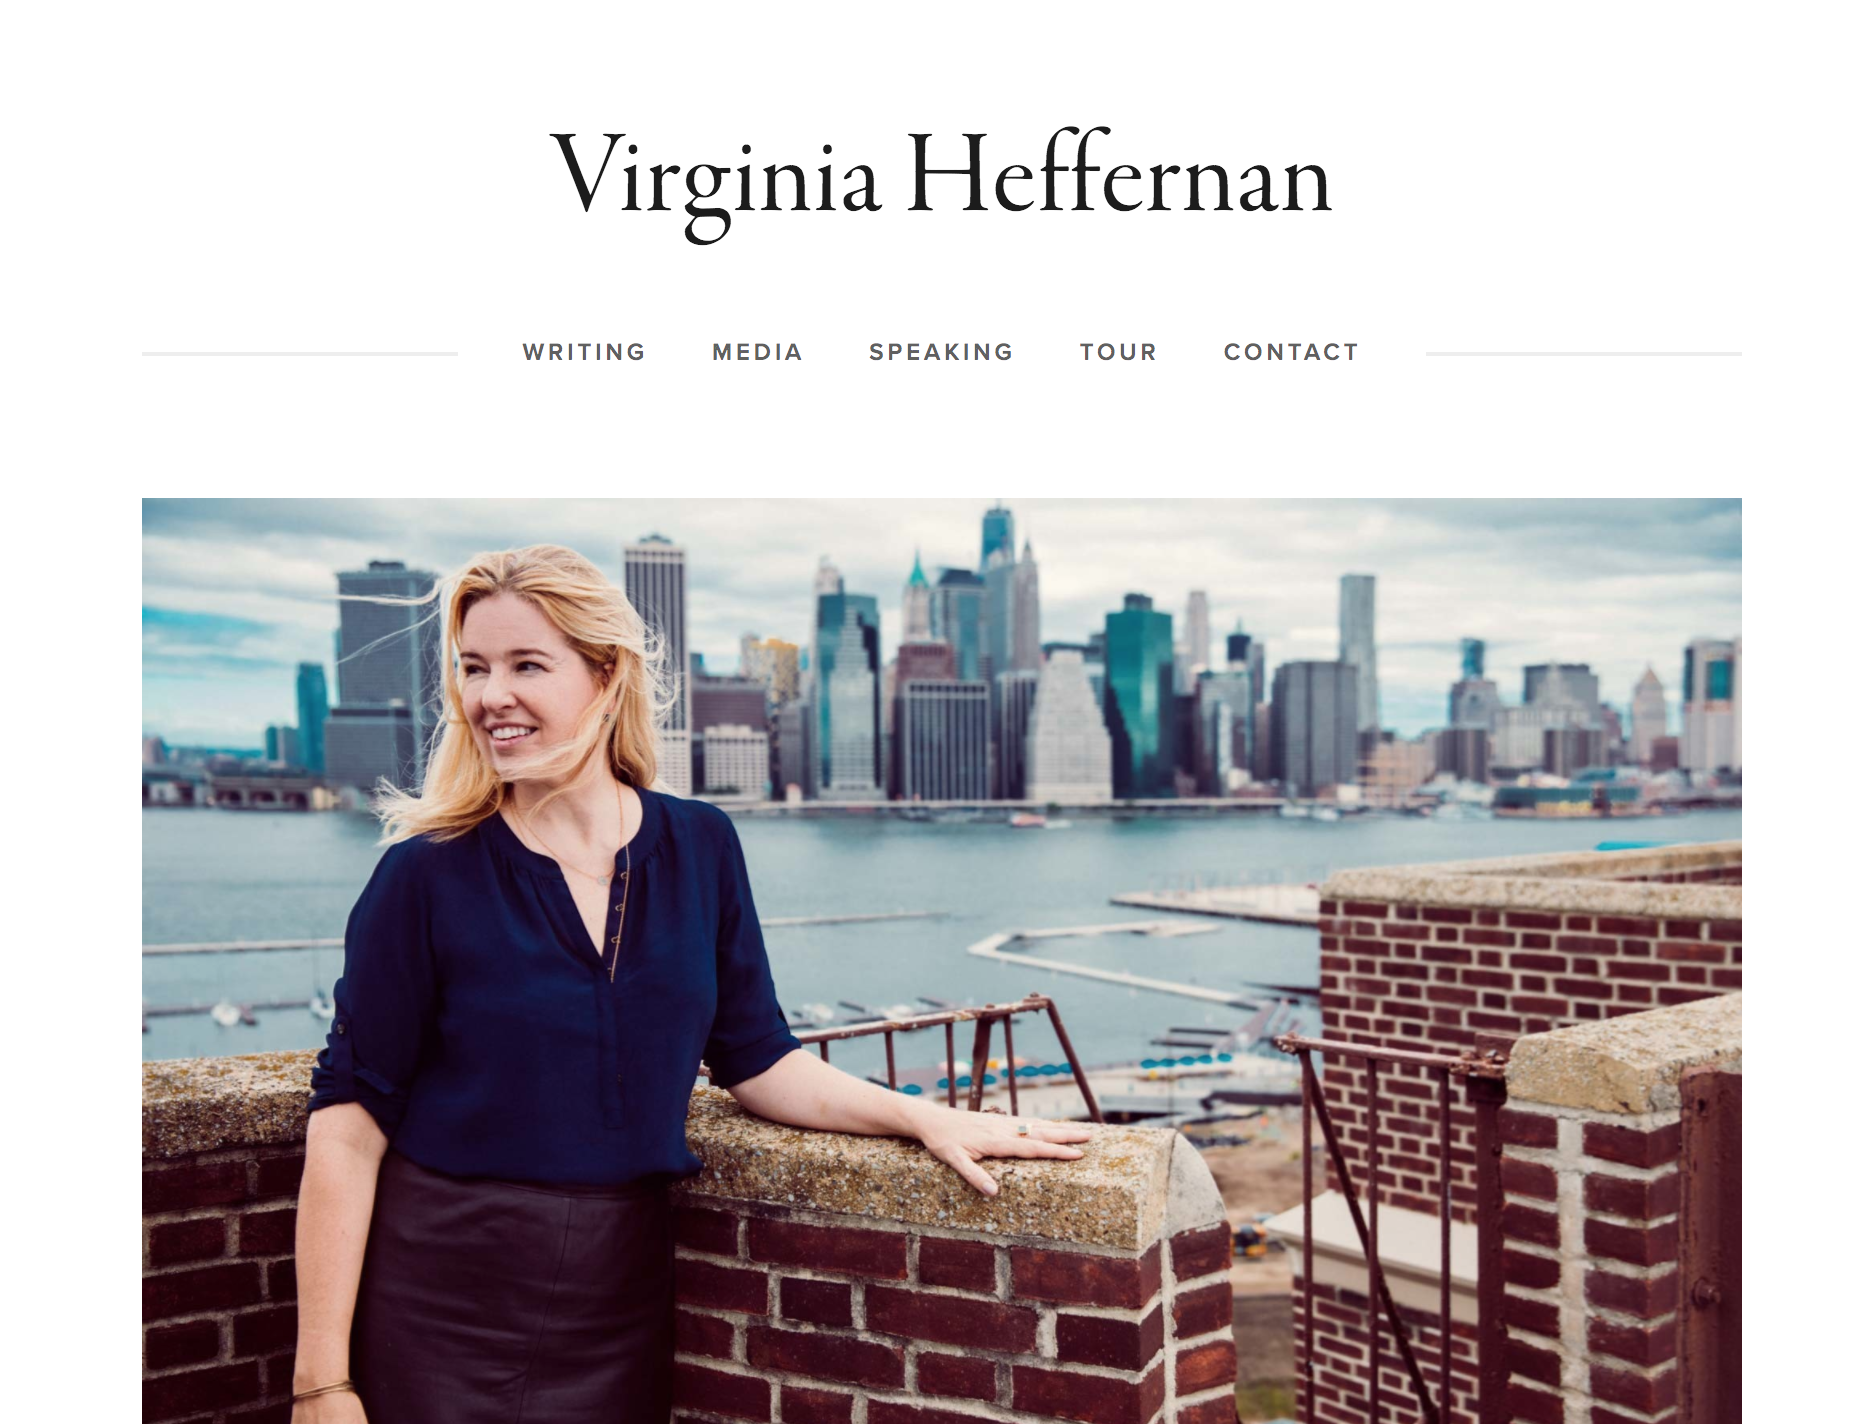 Research and website design for author Virginia Heffernan